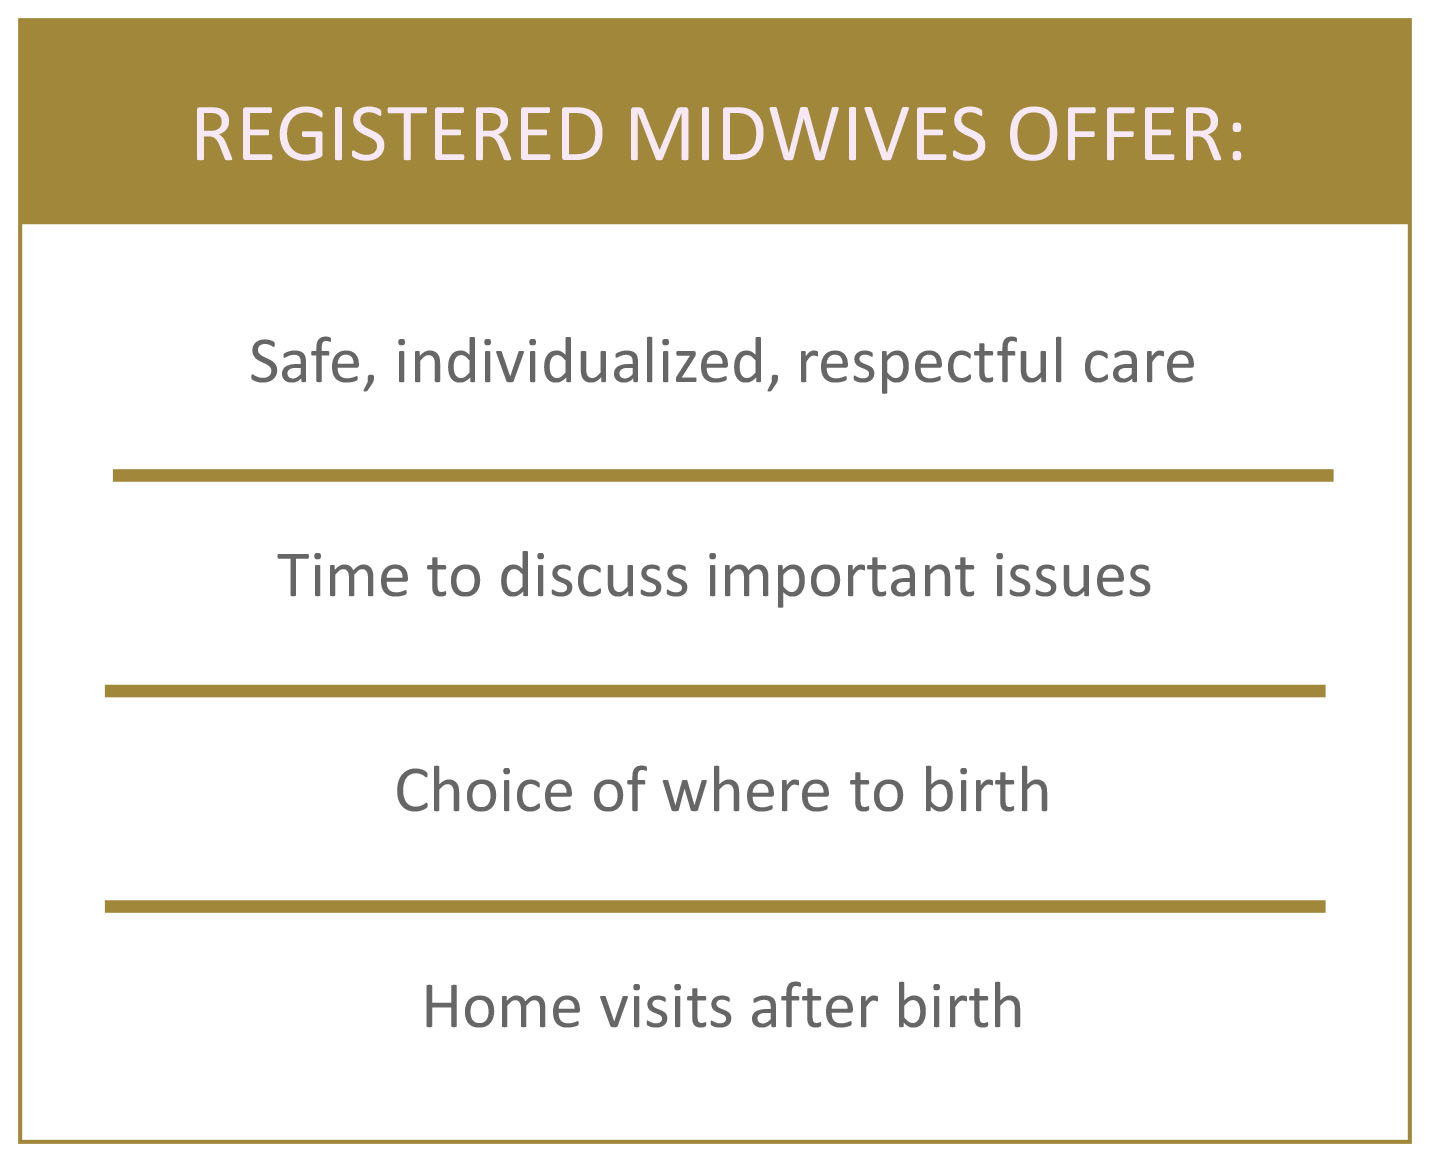 Midwives_offer_-_2.jpg